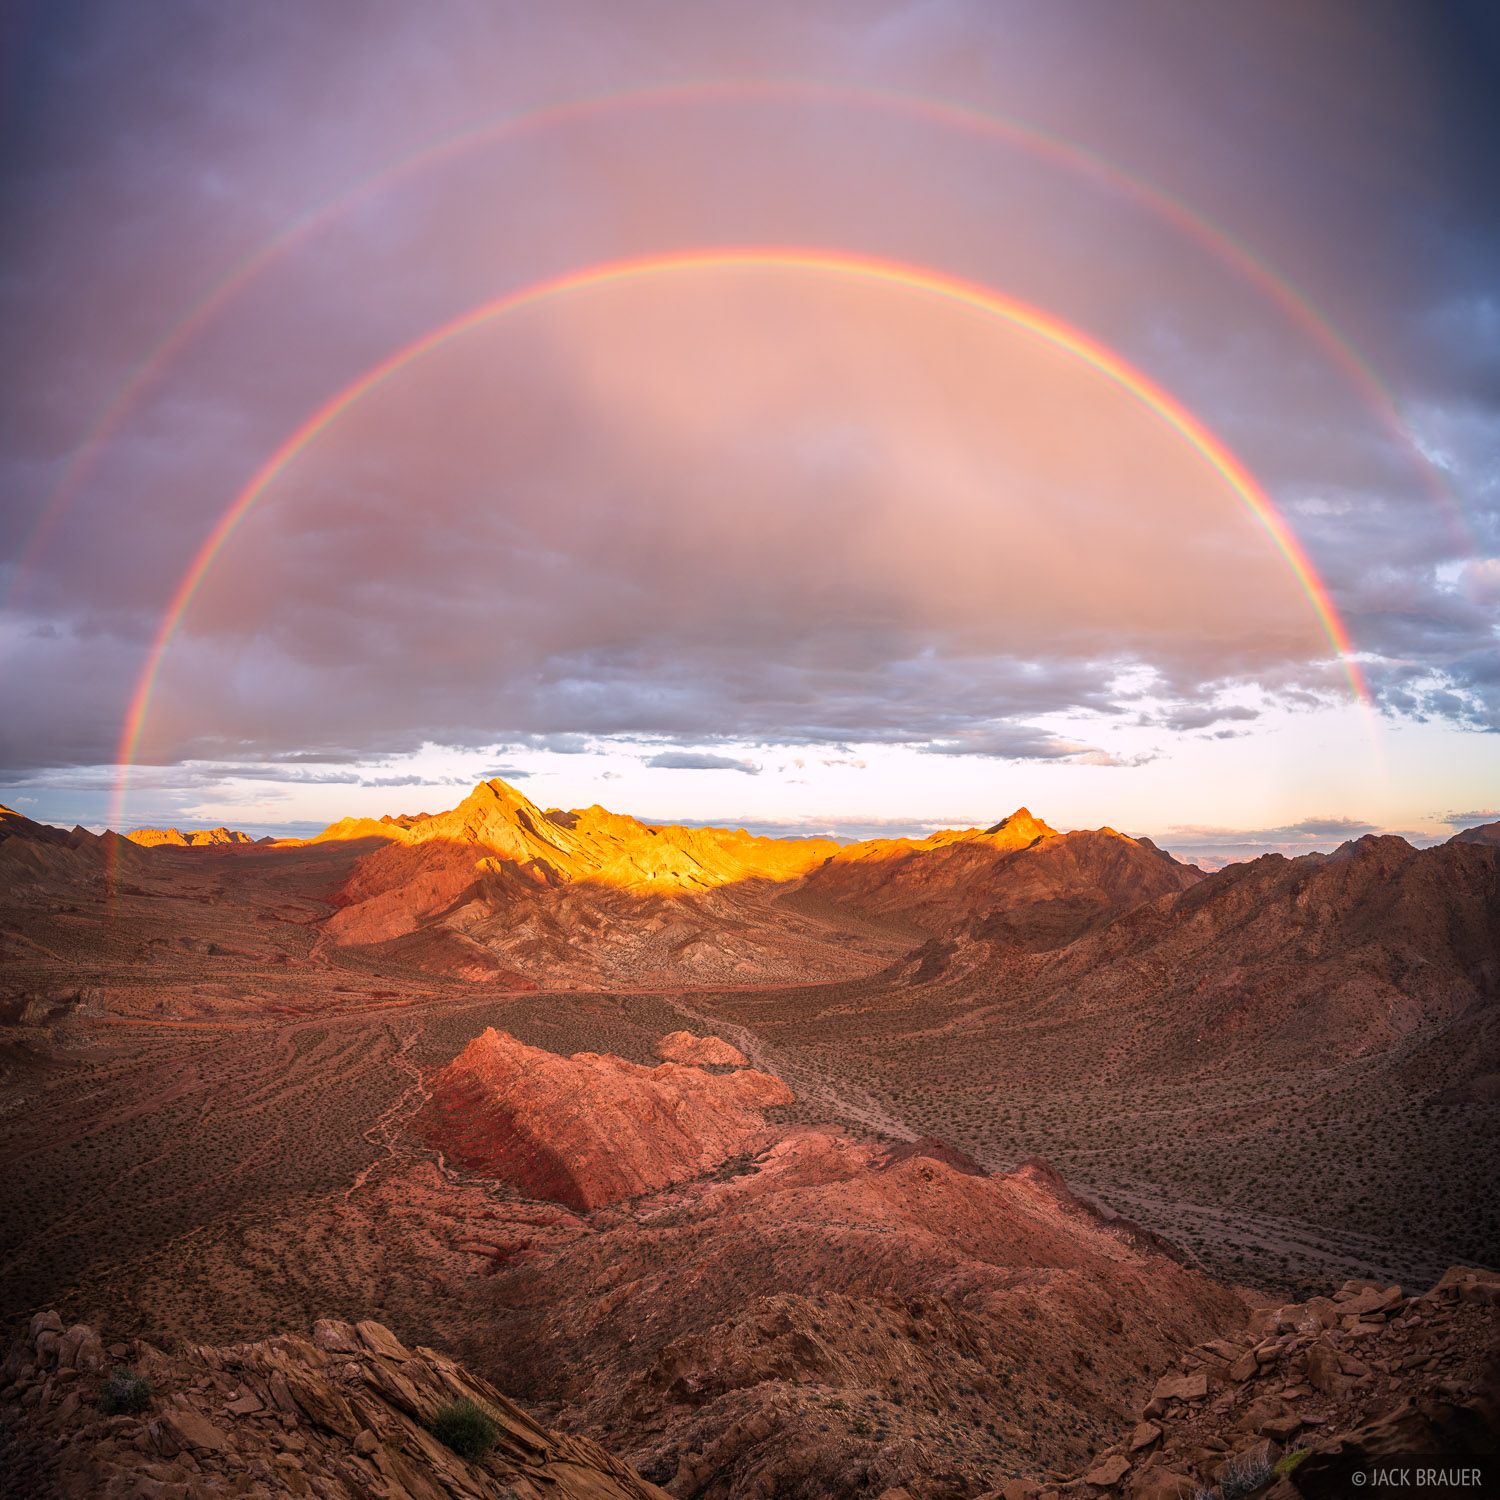 Nevada, Pinto Valley Wilderness, rainbow, Mojave Desert, Lake Mead National Recreation Area